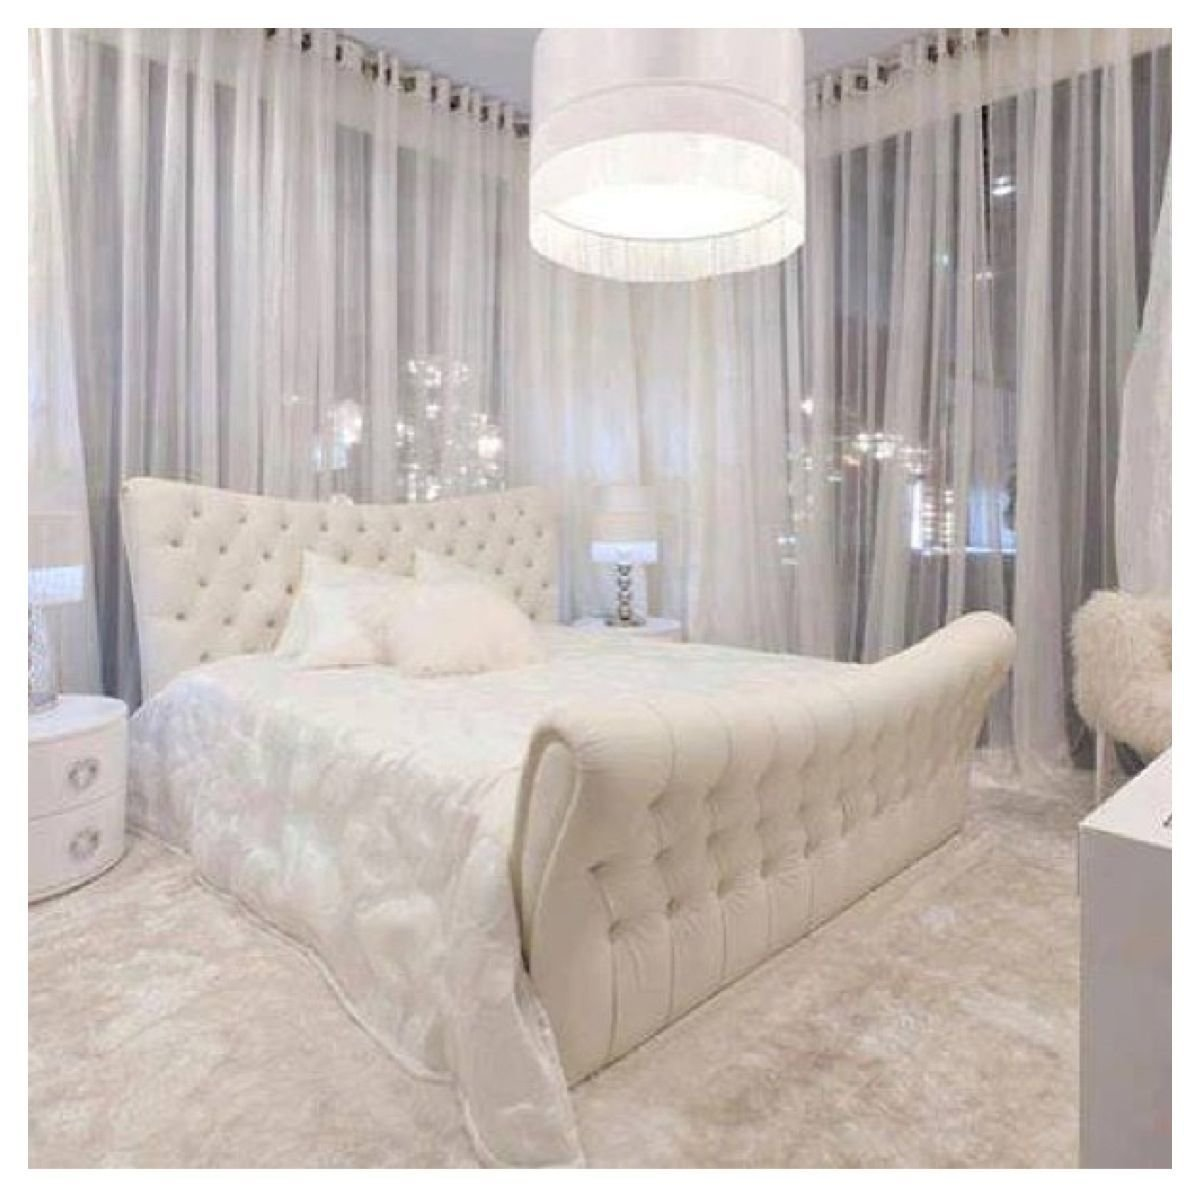 Best S*Xy Bedroom Home Decor Pinterest With Pictures